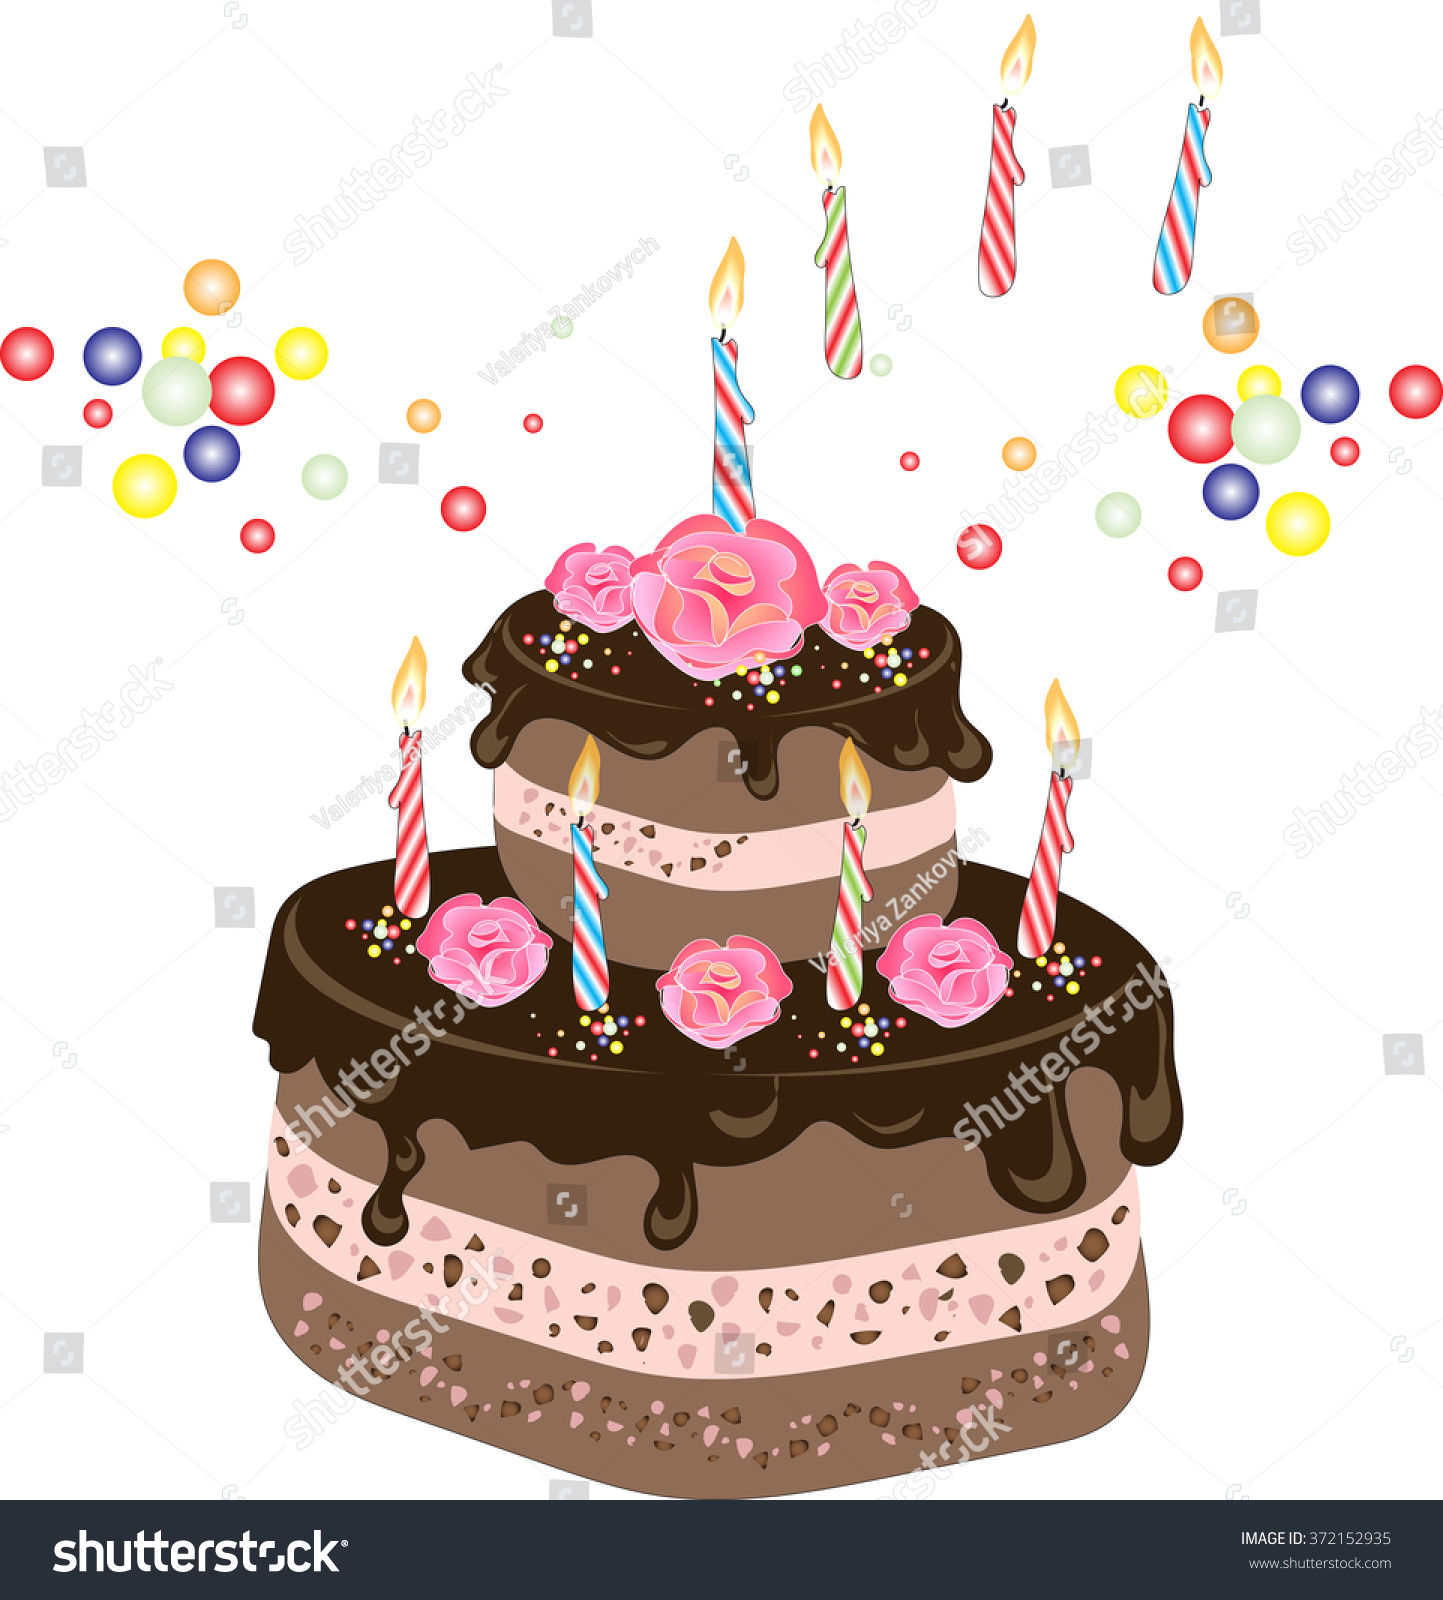 Chocolate birthday cake with chocolate frosting candles cream rose id 372152935 izmirmasajfo